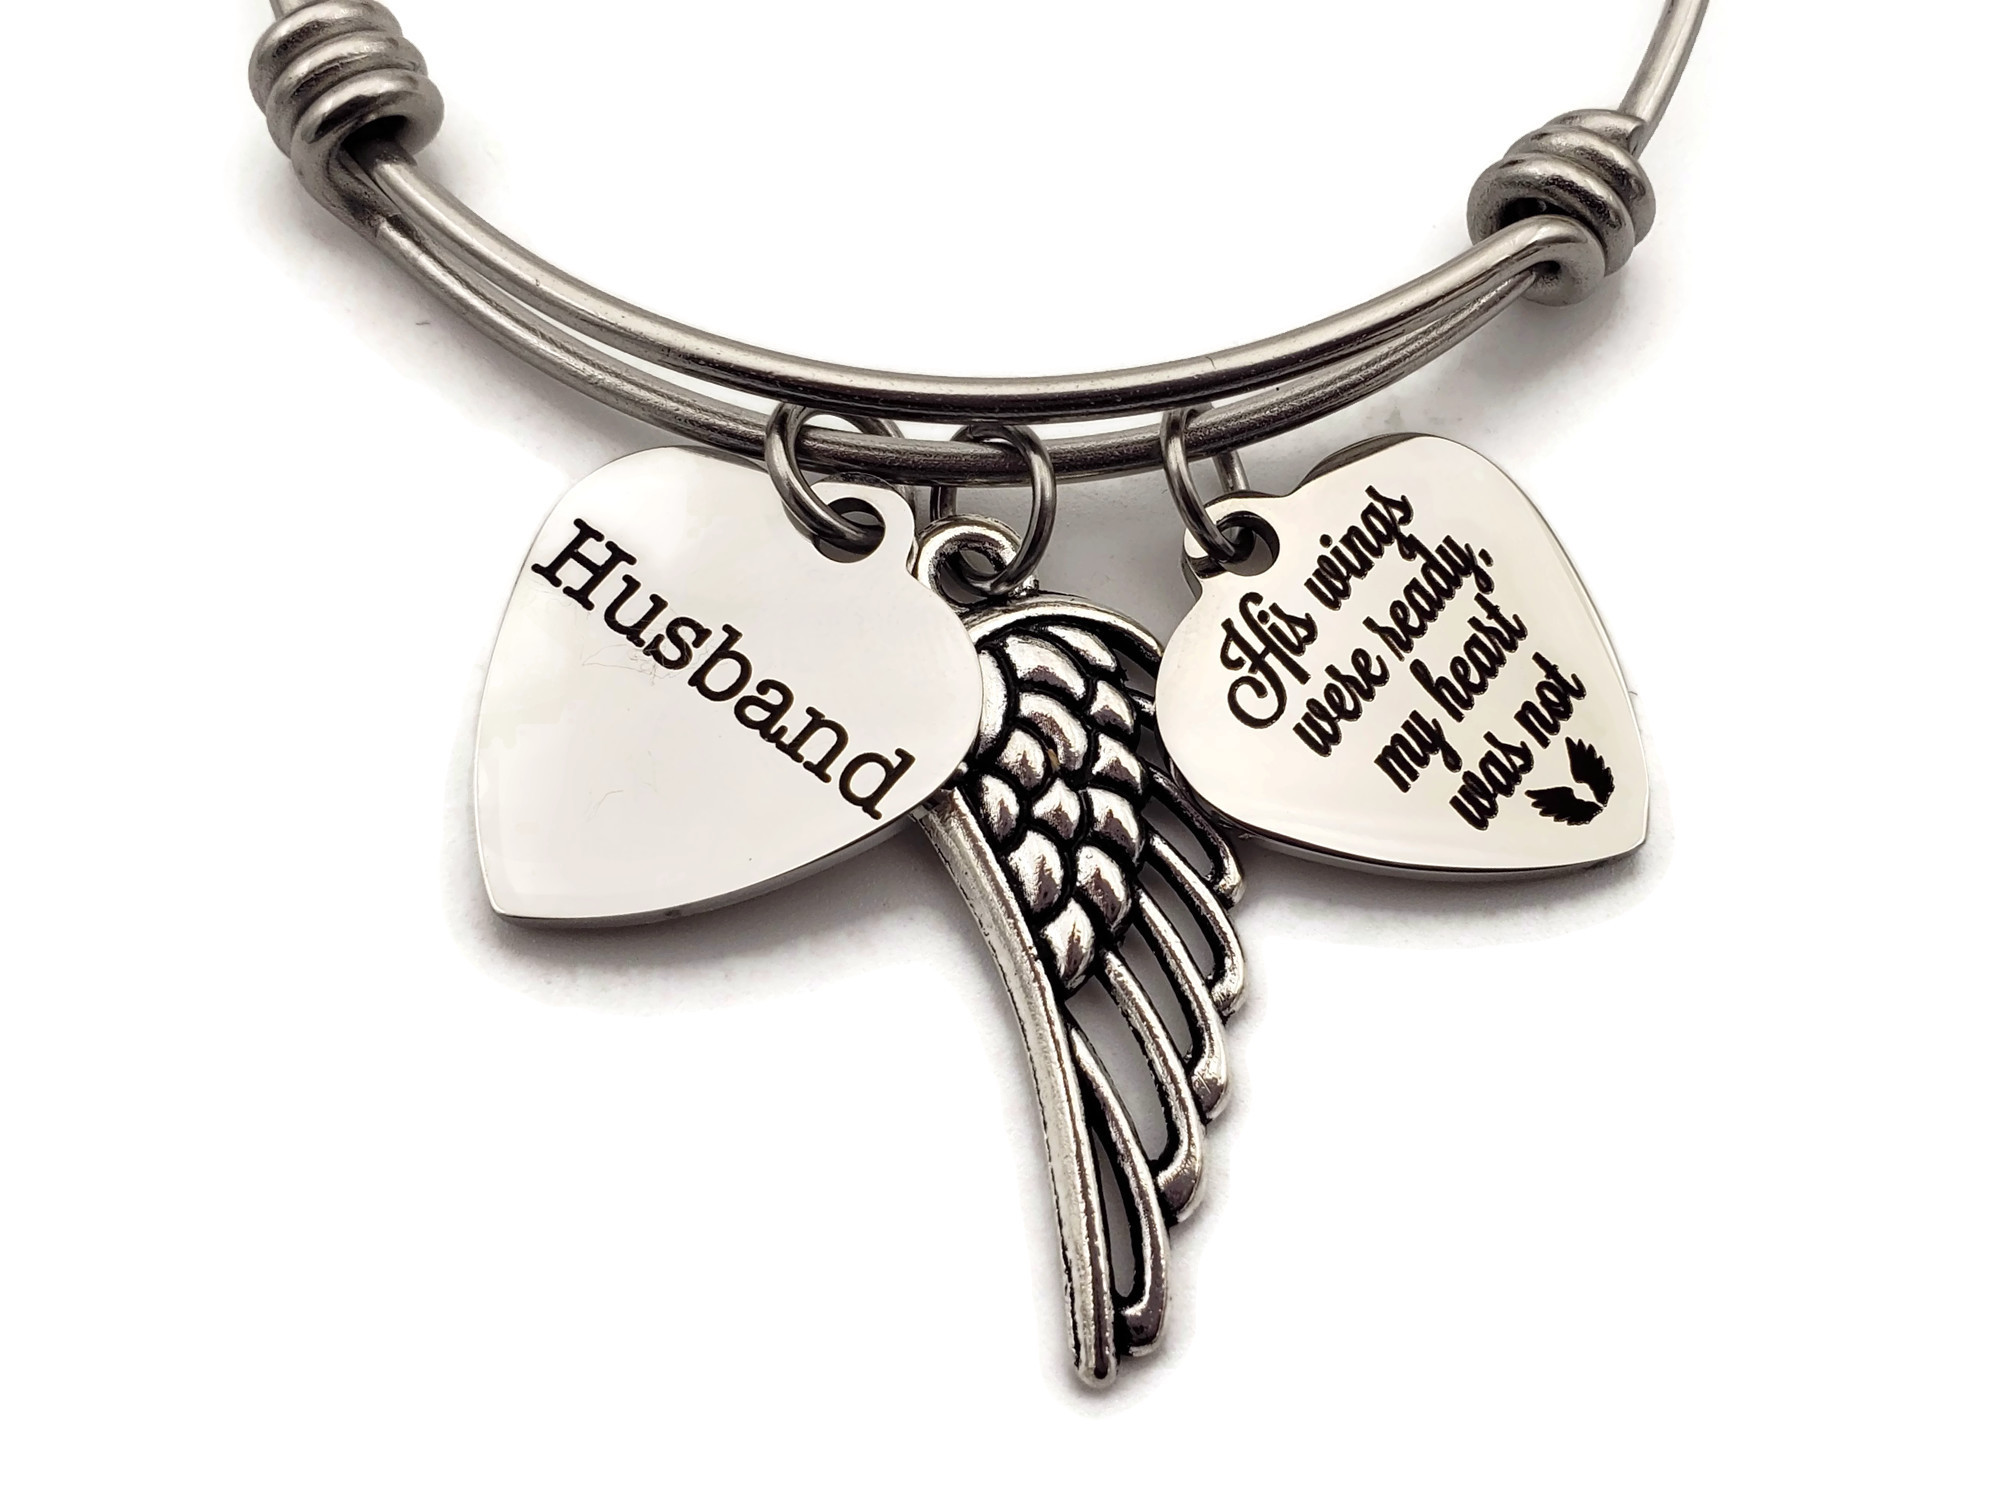 Remembrance Bracelet Husband Loss - Memorial Gifts for Loss of Husband - Free Shipping